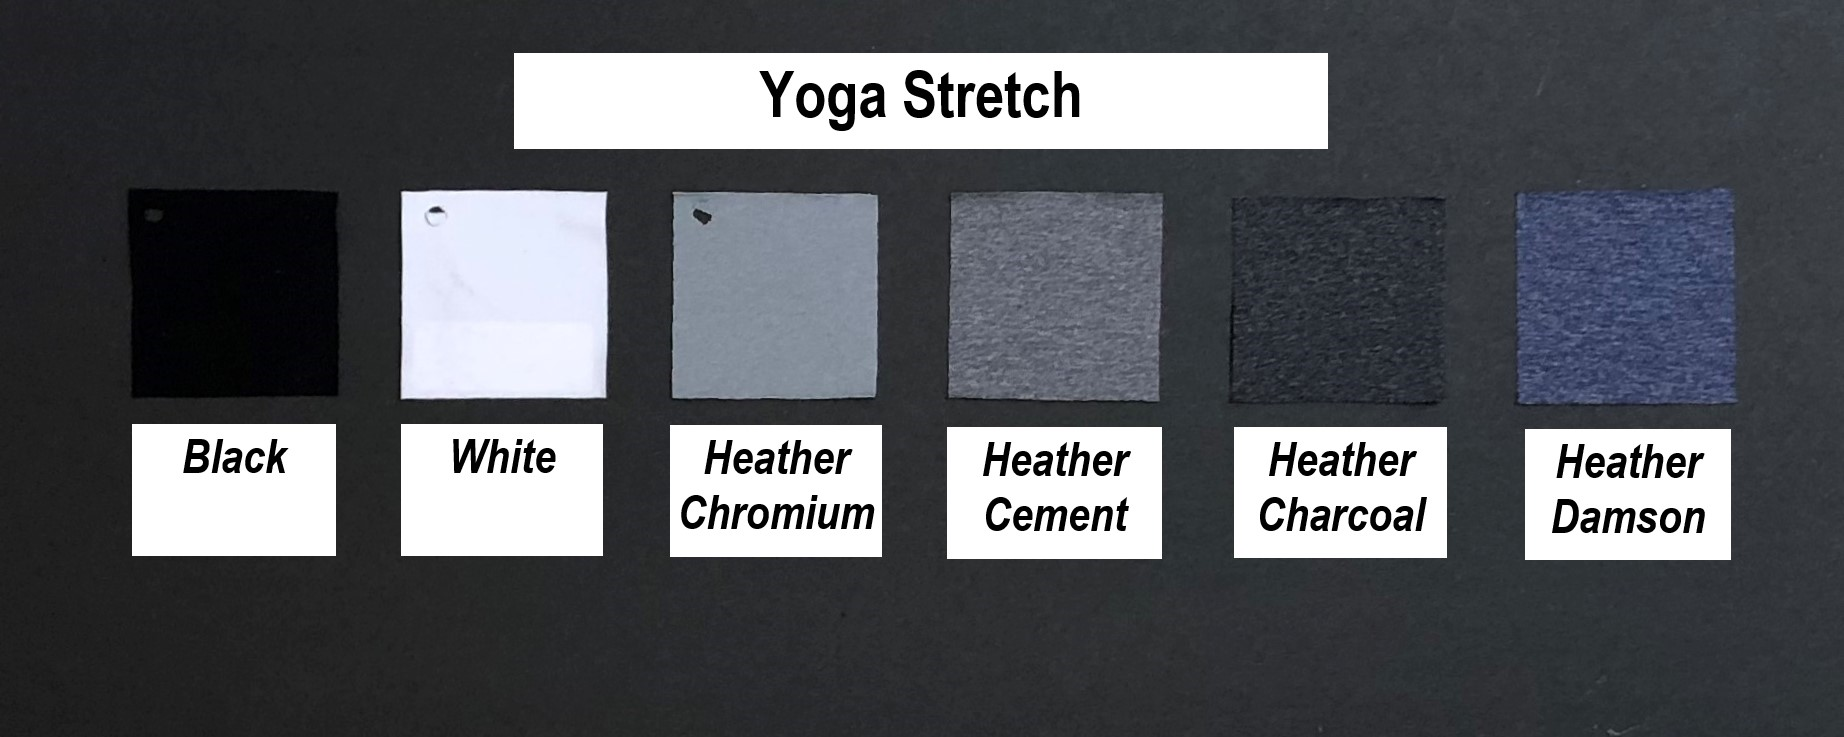 3713d6db01f Activewear - Technical Performance Fabric. Outerwear, Baselayer ...